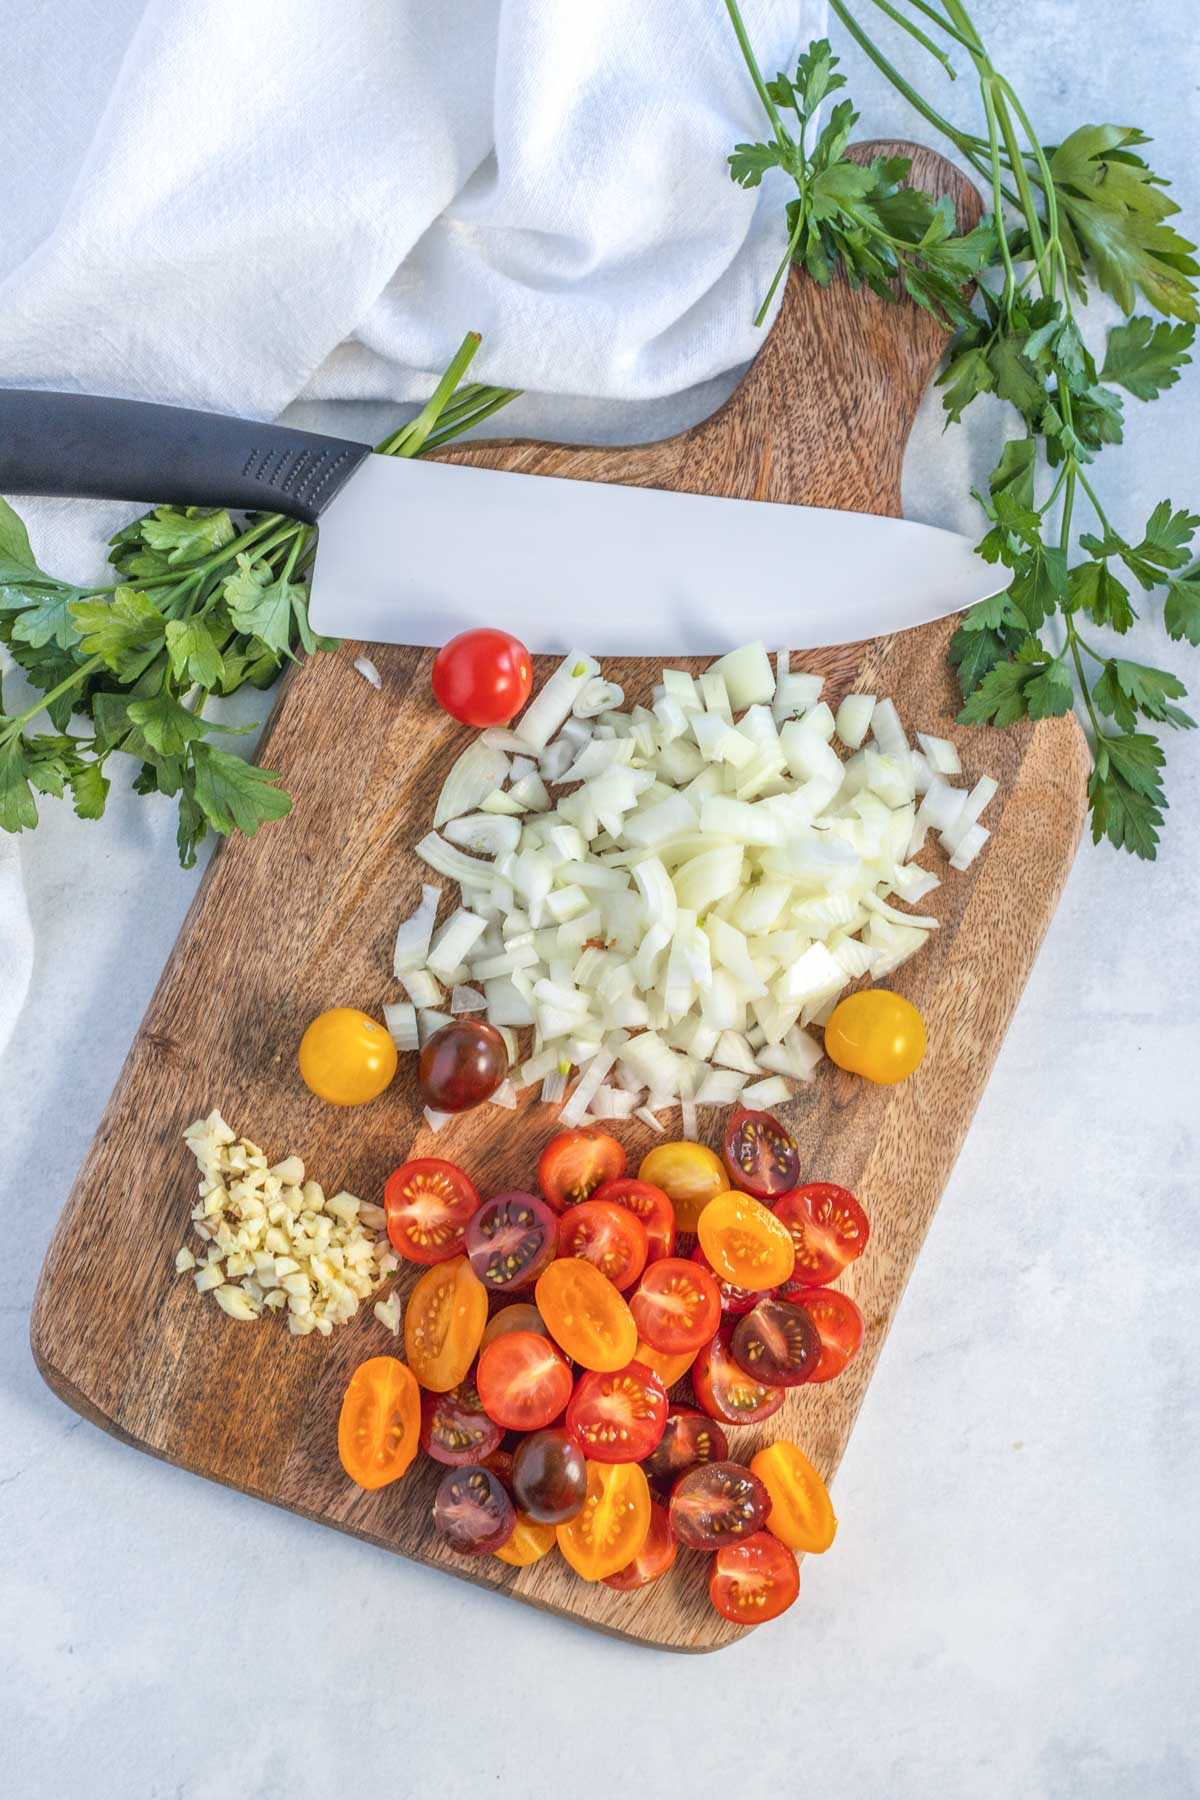 chopping garlic, tomatoes and onion on a cutting board